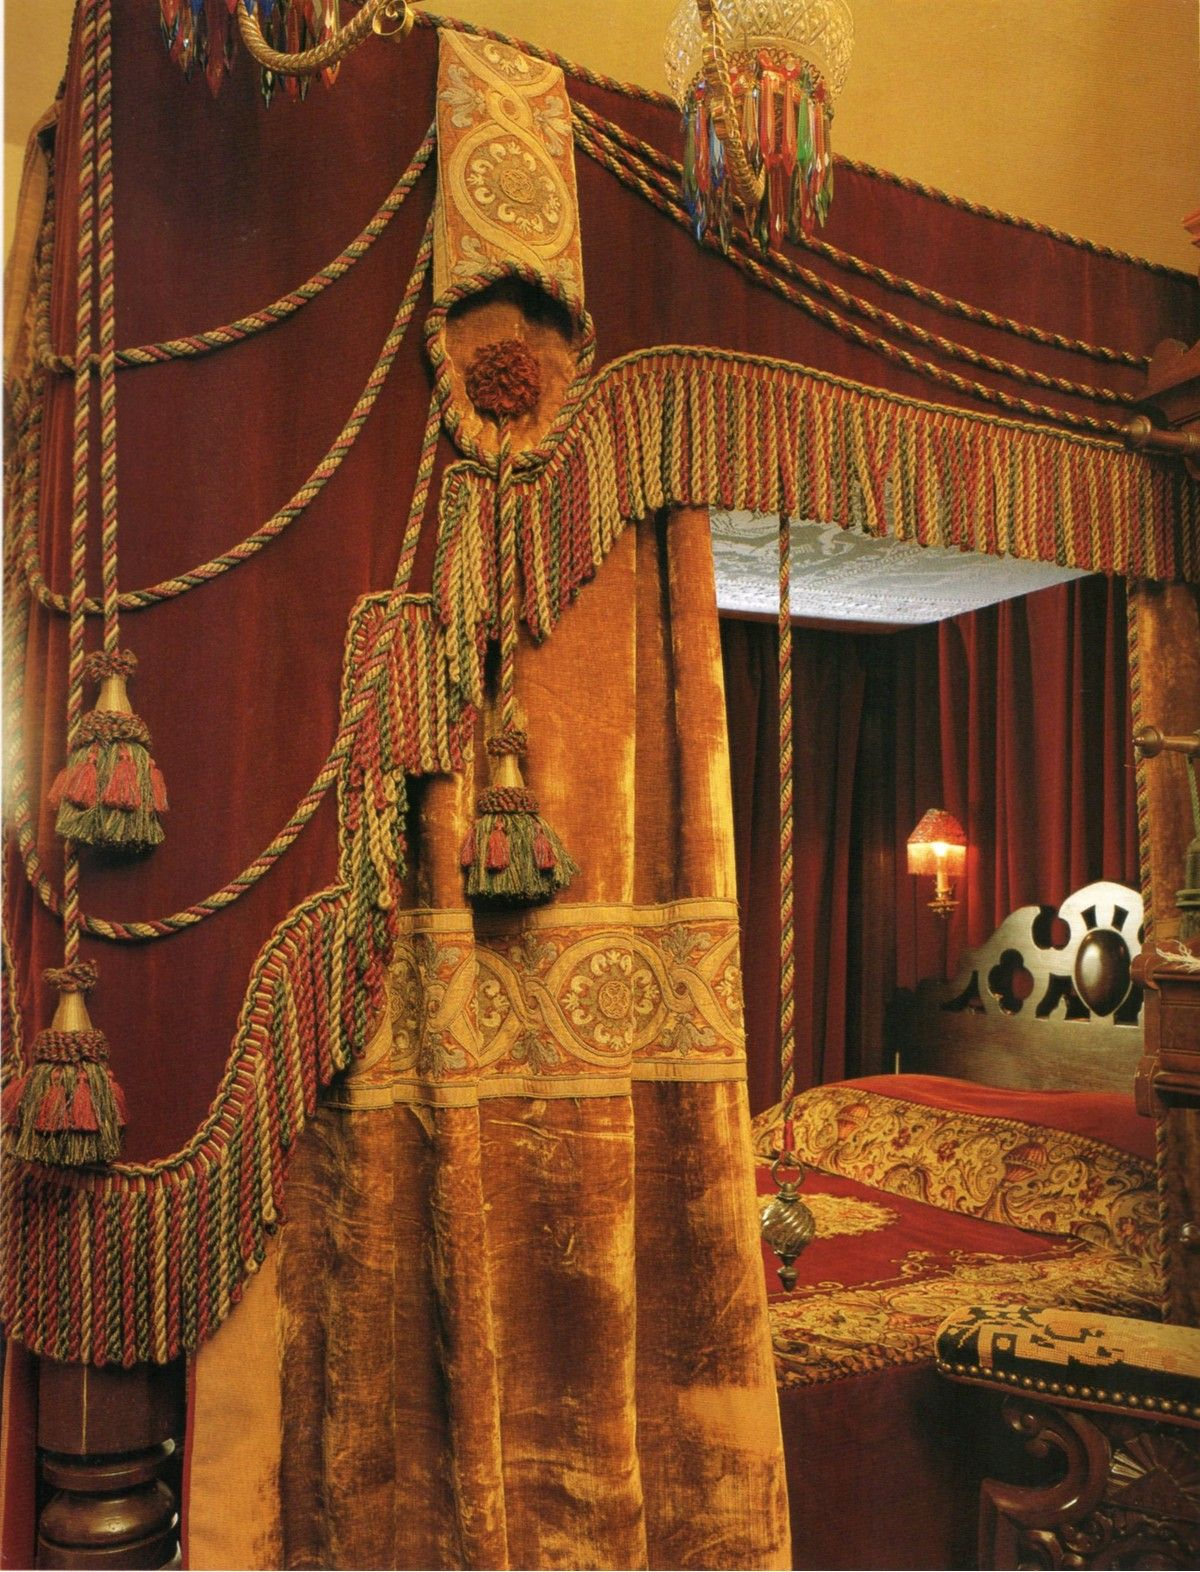 A Dreamy Four Poster Bed Drenched In Victorian Finery Splendor Victorian Curtains Victorian Style Homes Bohemian Interior Design